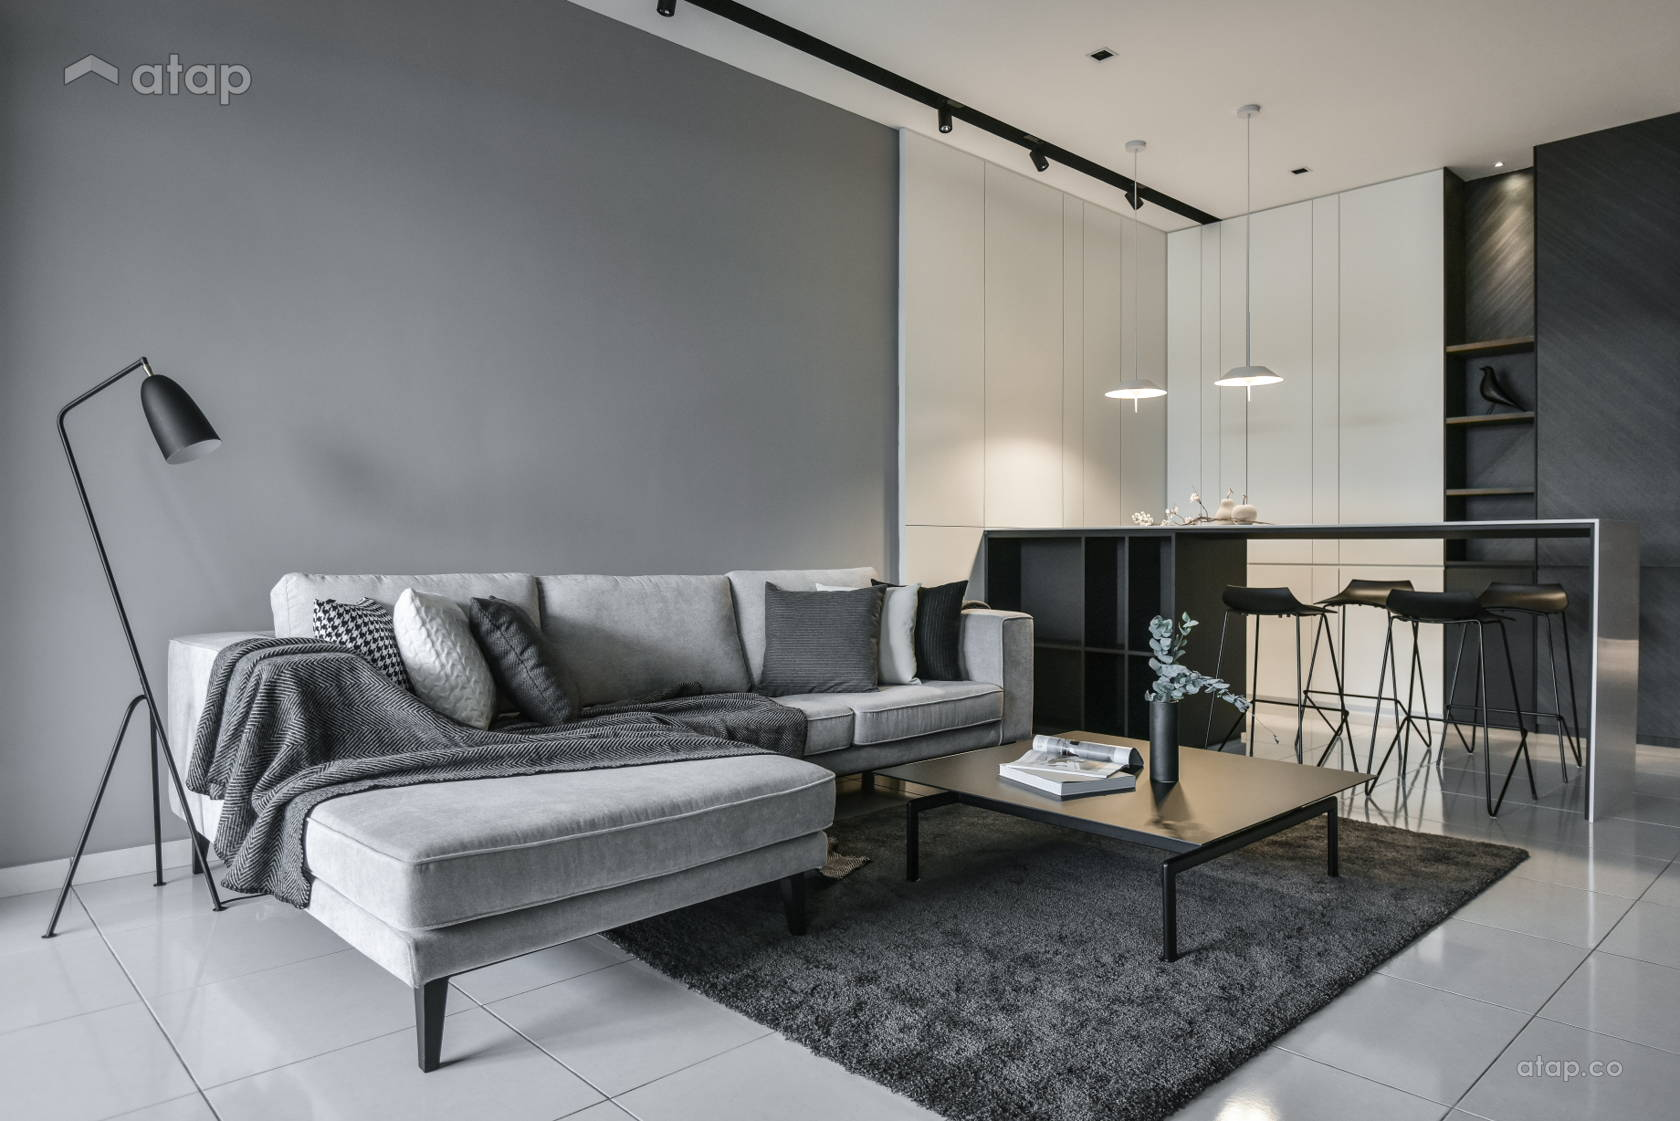 Awesome Scandinavian Living Rooms That Will Inspire Your 2019 Beatyapartments Chair Design Images Beatyapartmentscom